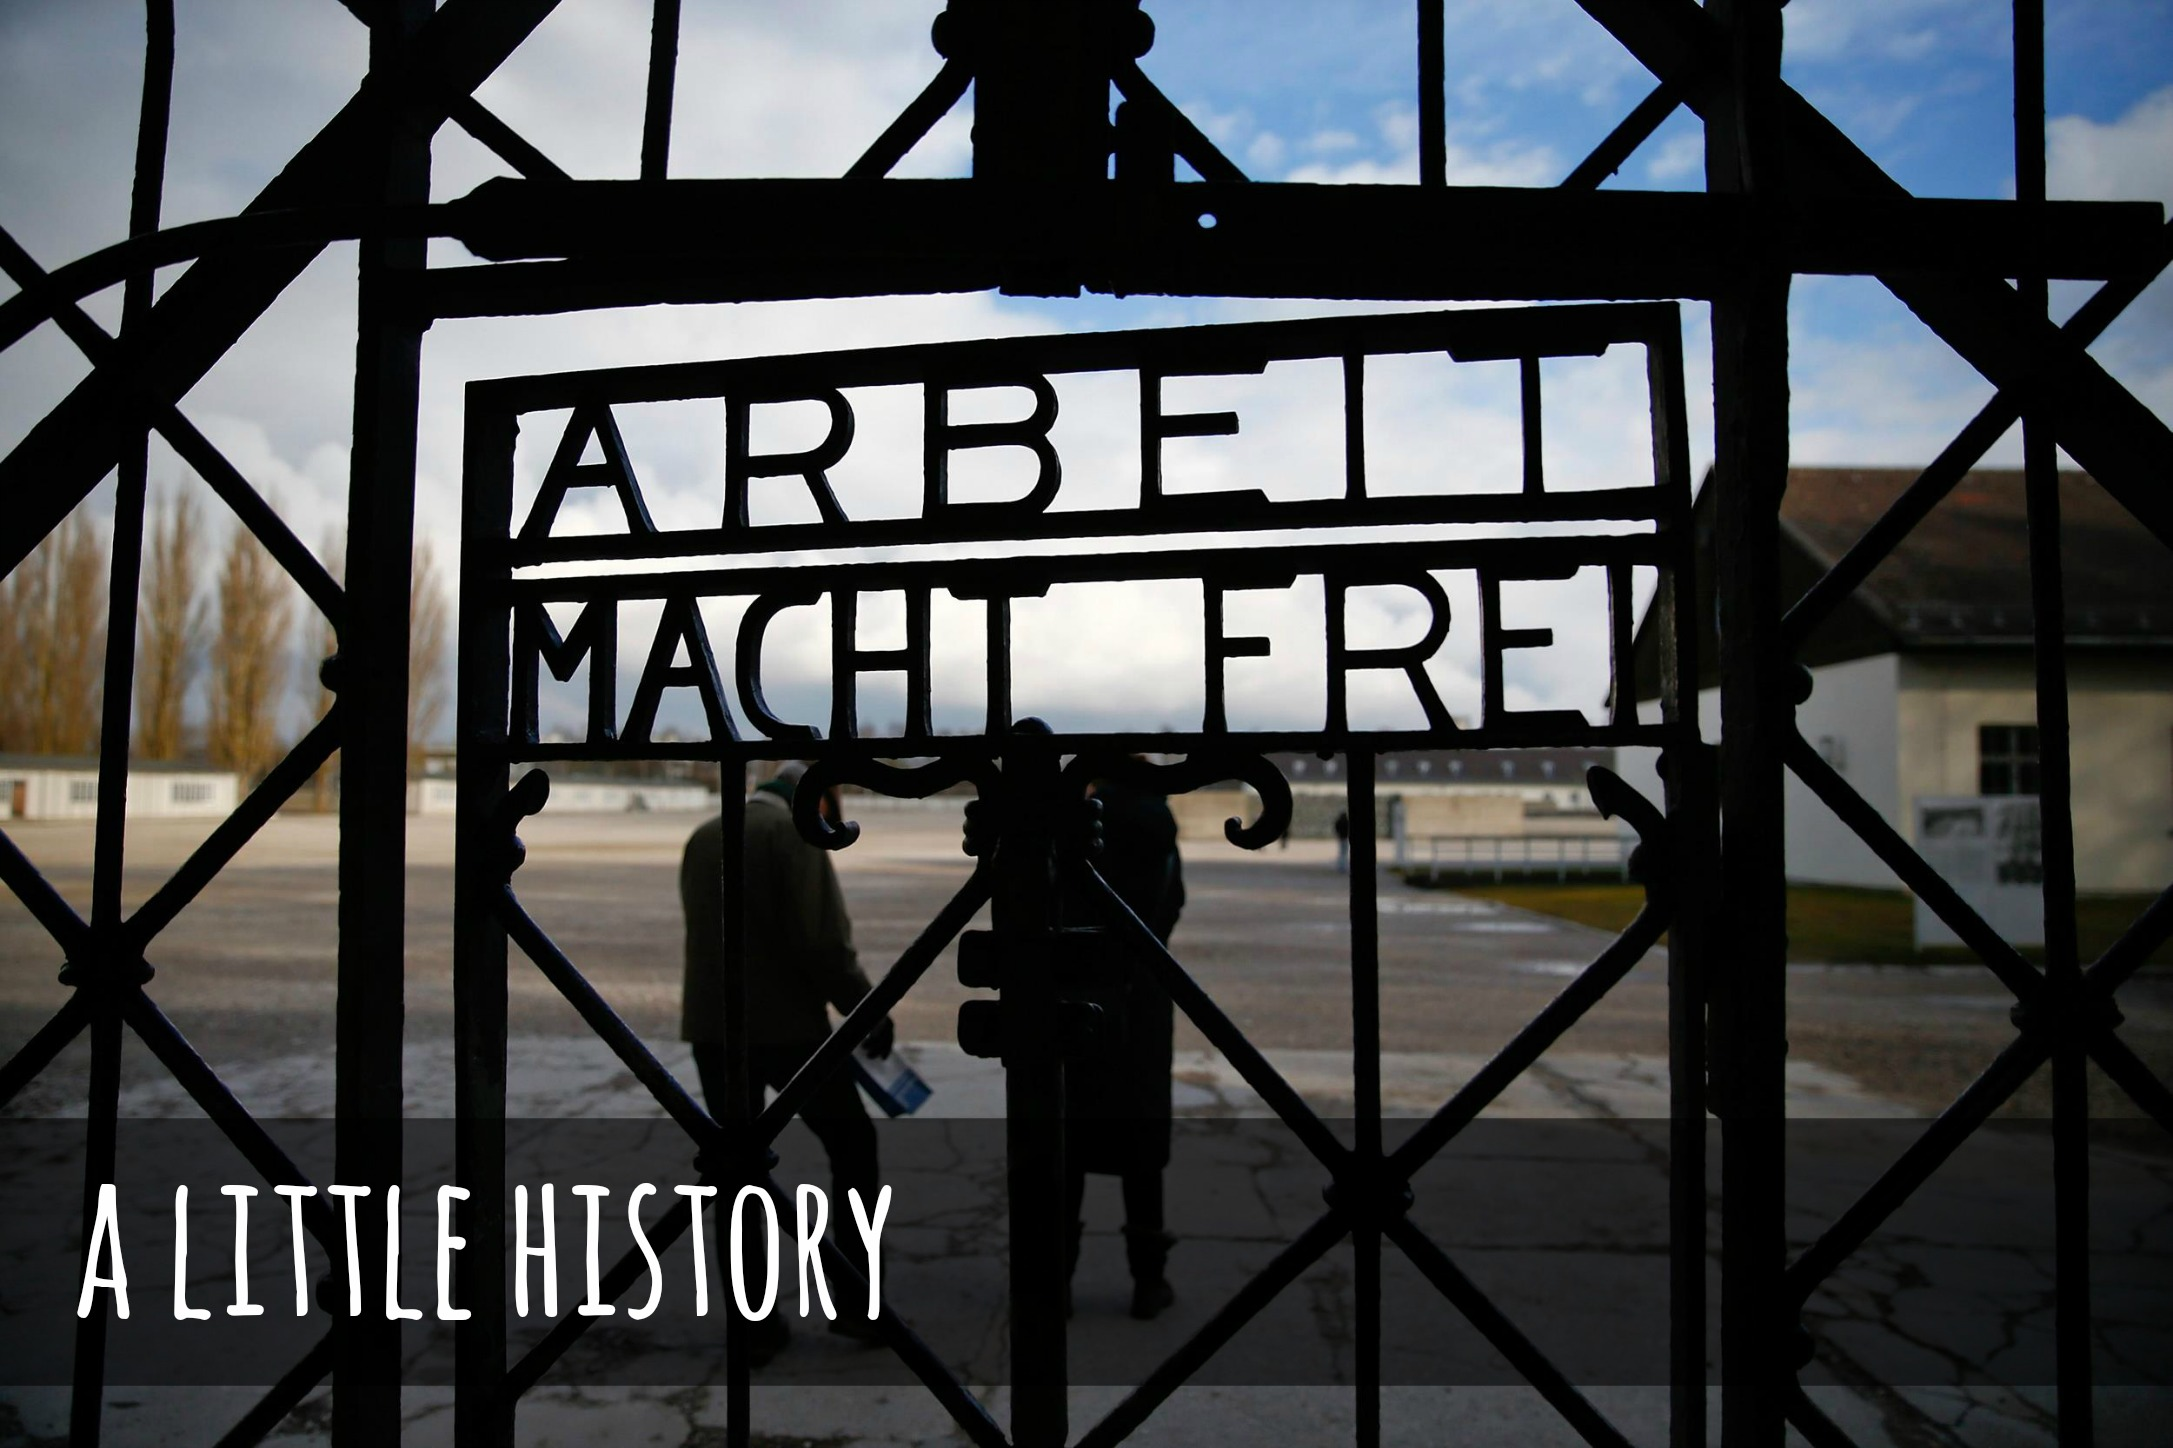 Visiting Dachau Concentration Camp a little history